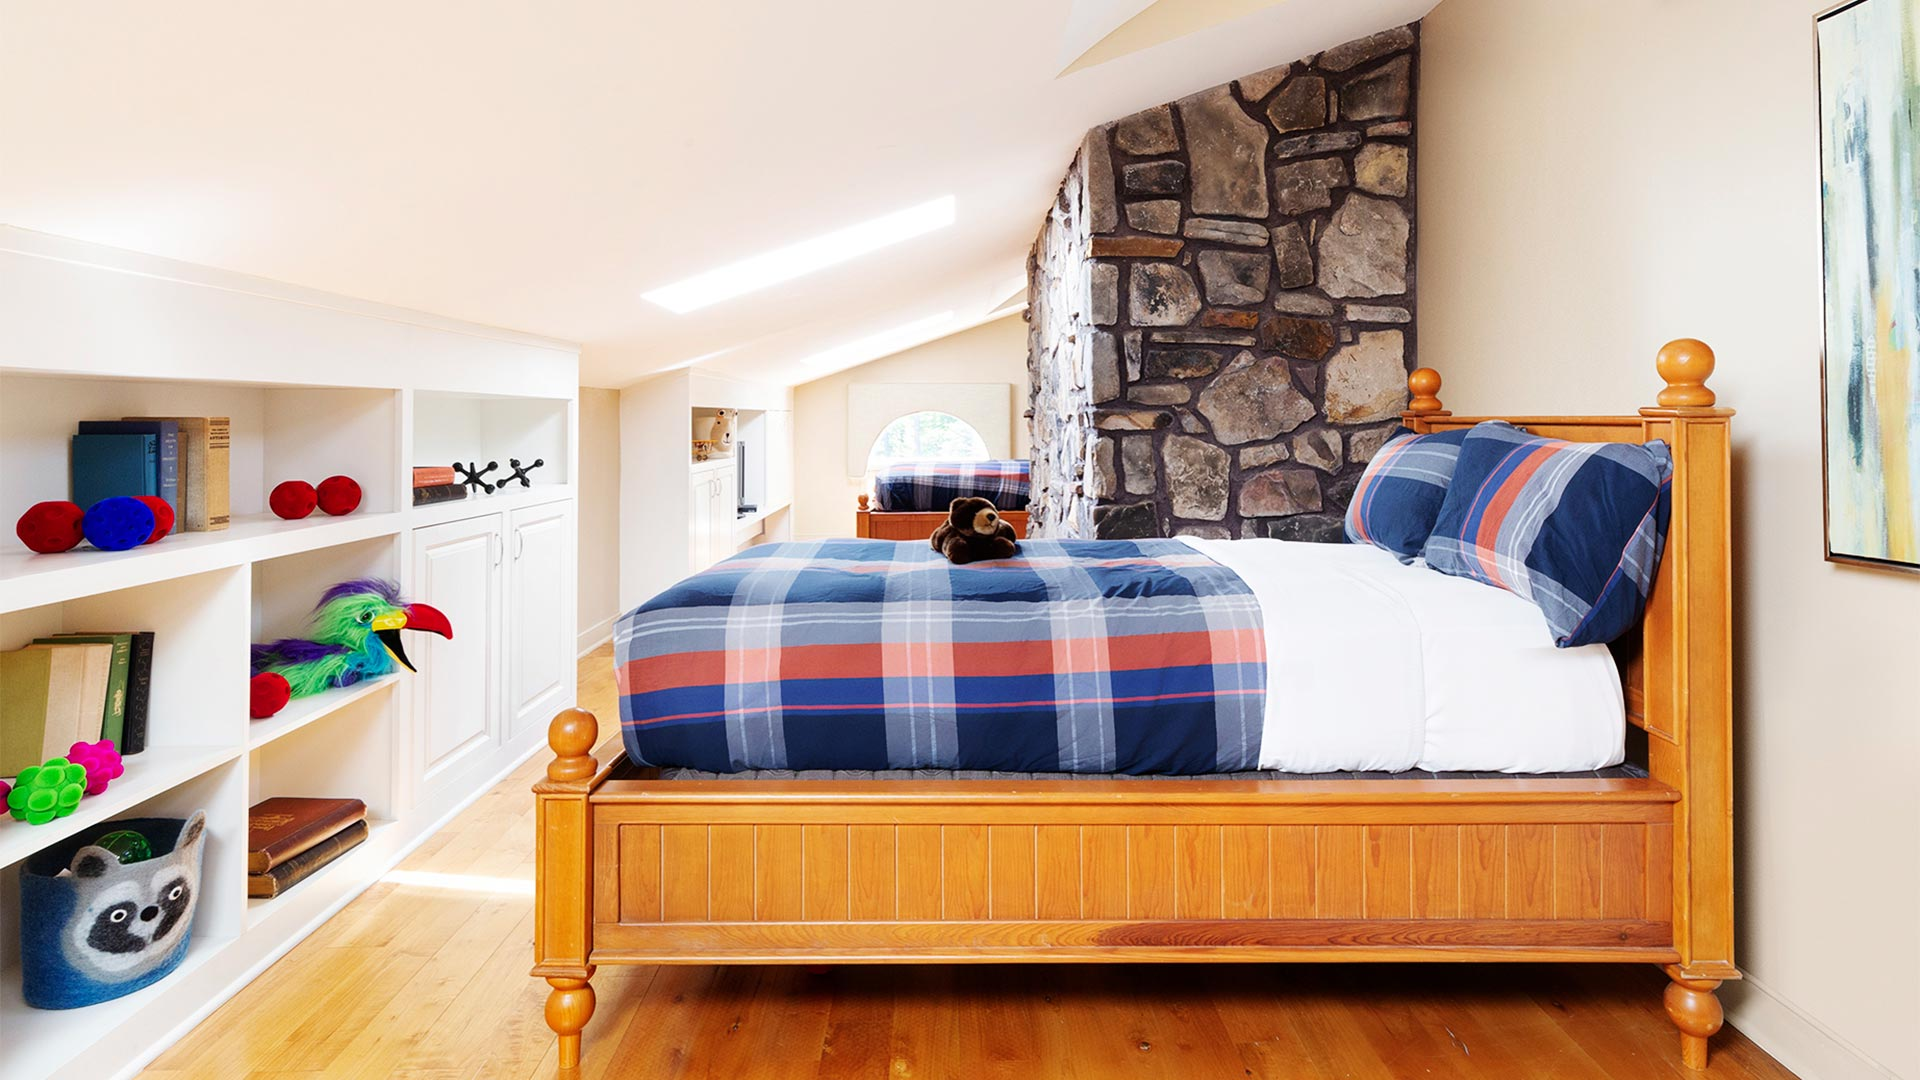 interior shot of a children's bedroom. There is a bed with plaid bedding and a shelving unit across from the bed with toys lining it.